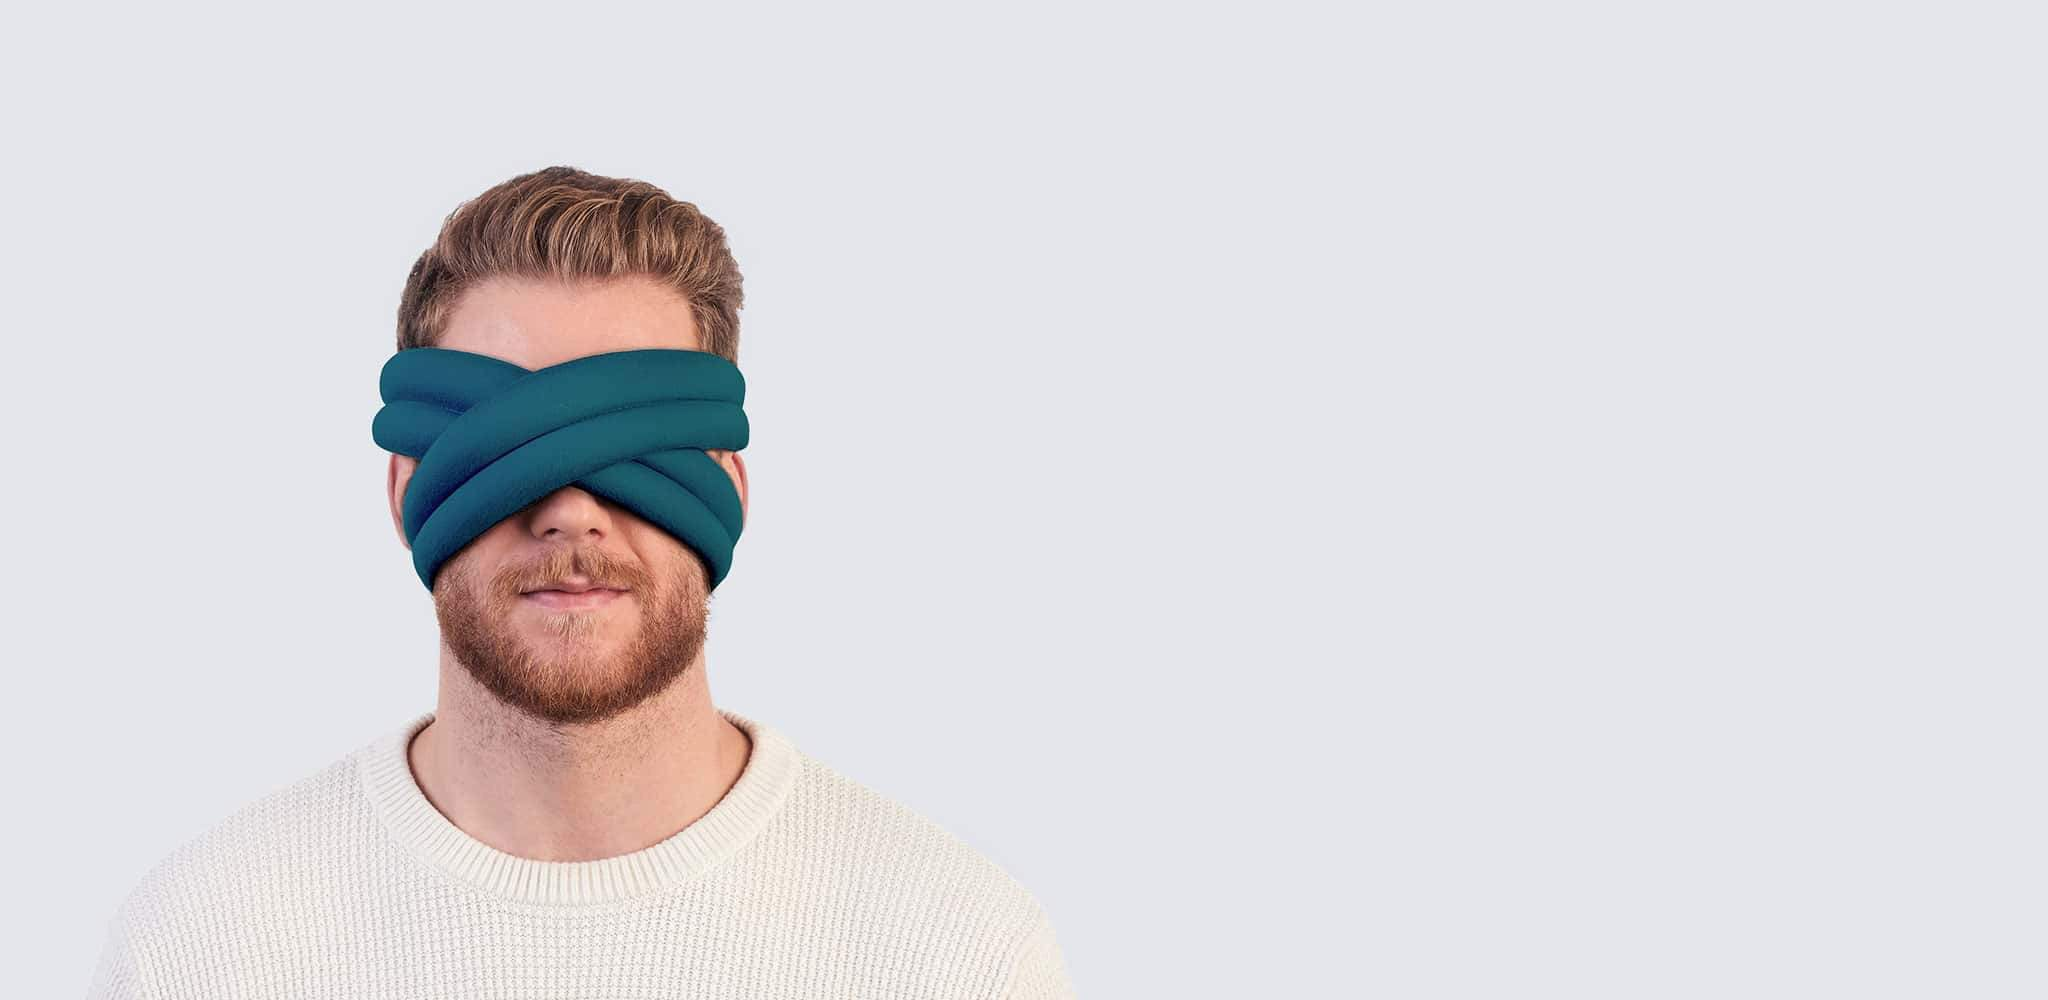 Man looking relaxed while wearing the OstrichPillow LOOP.